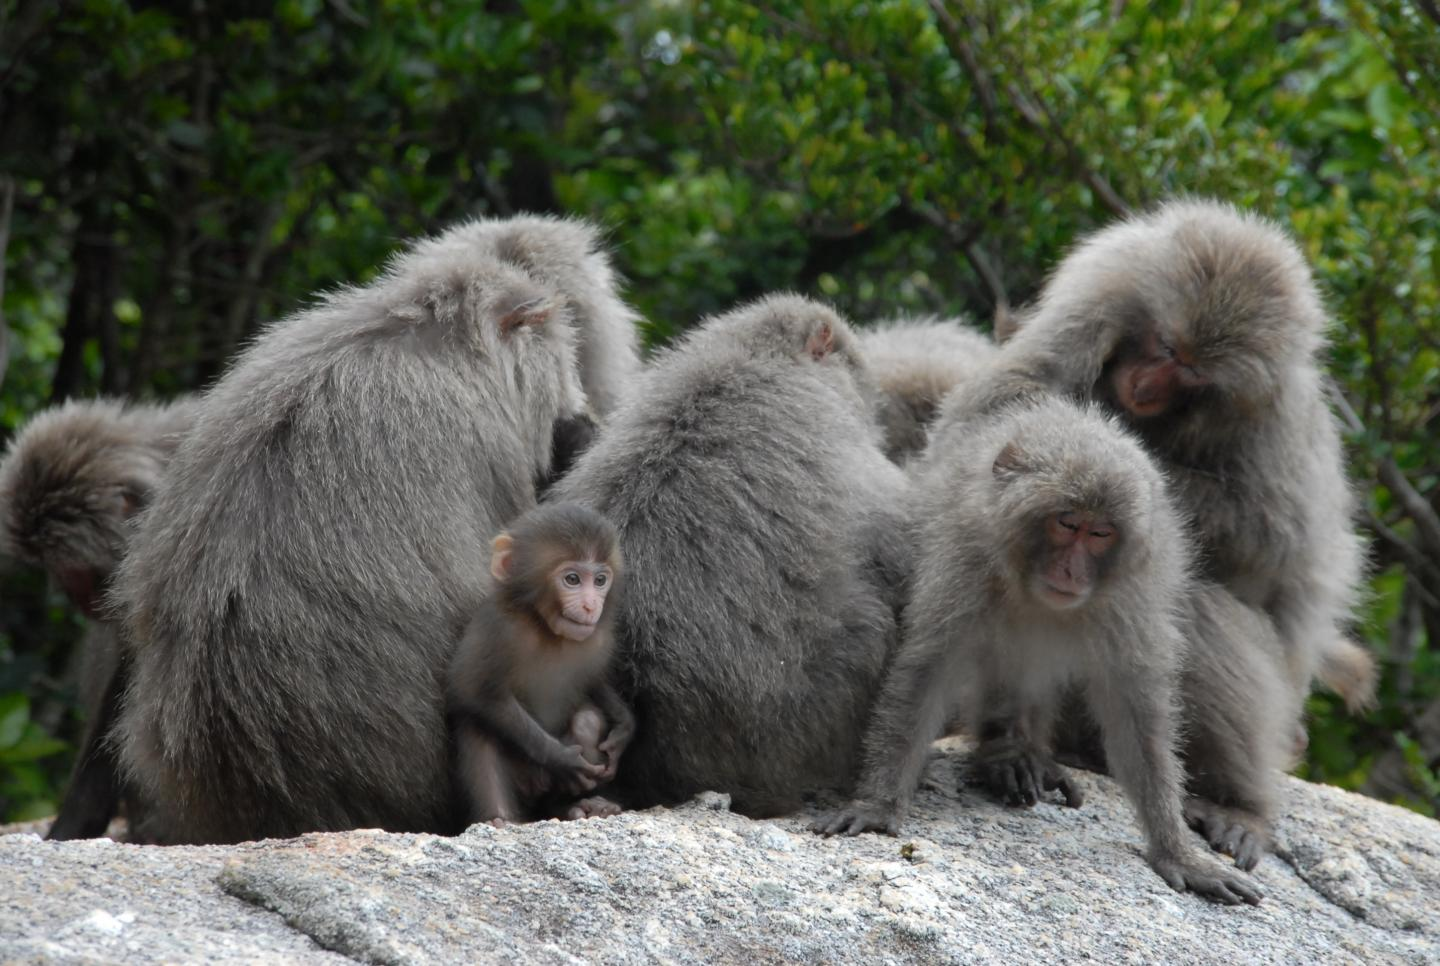 Japanese Macaques in a Social Group